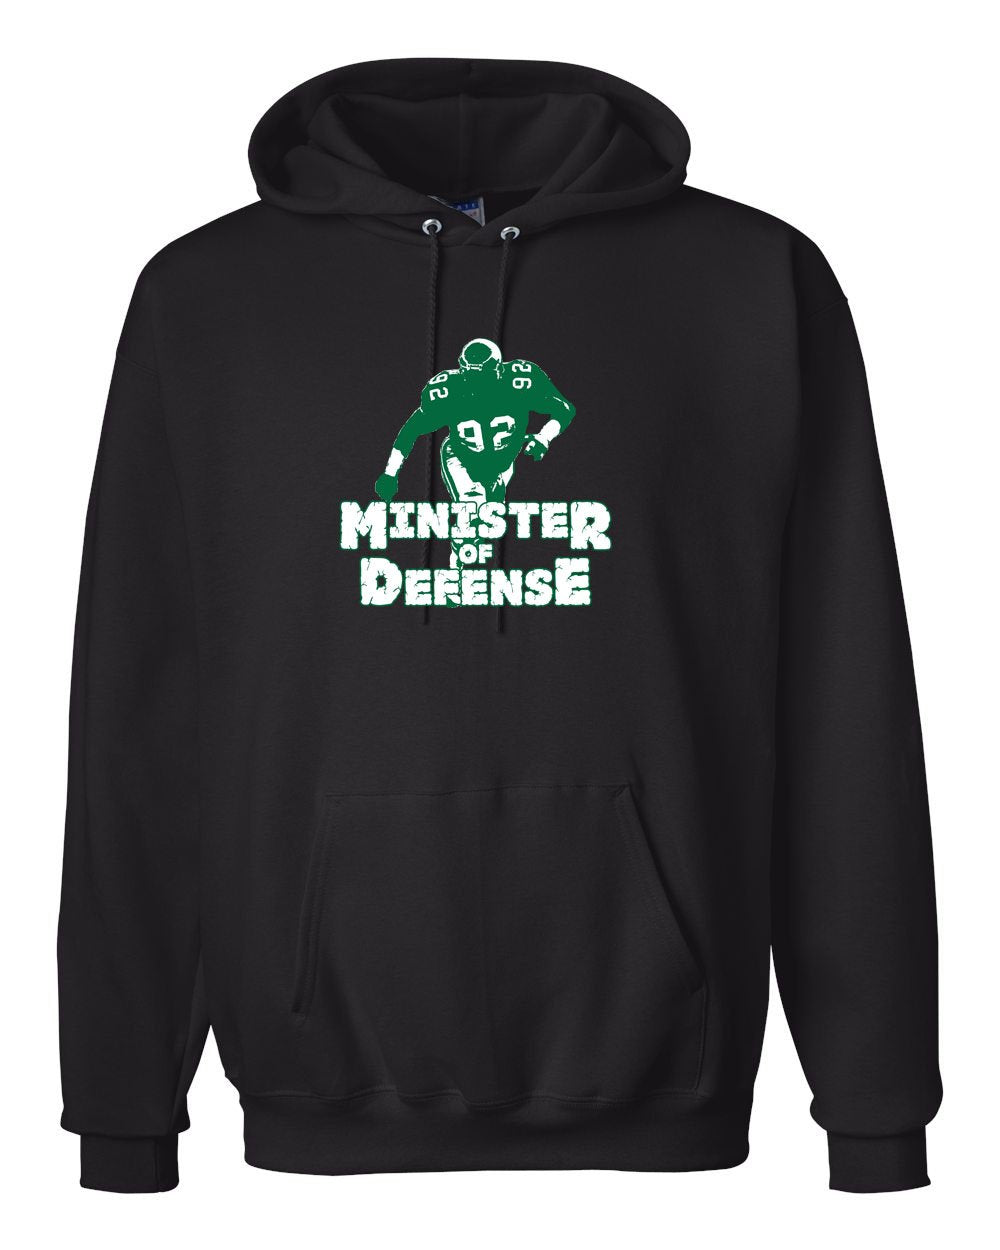 Minister Of Defense Hoodie